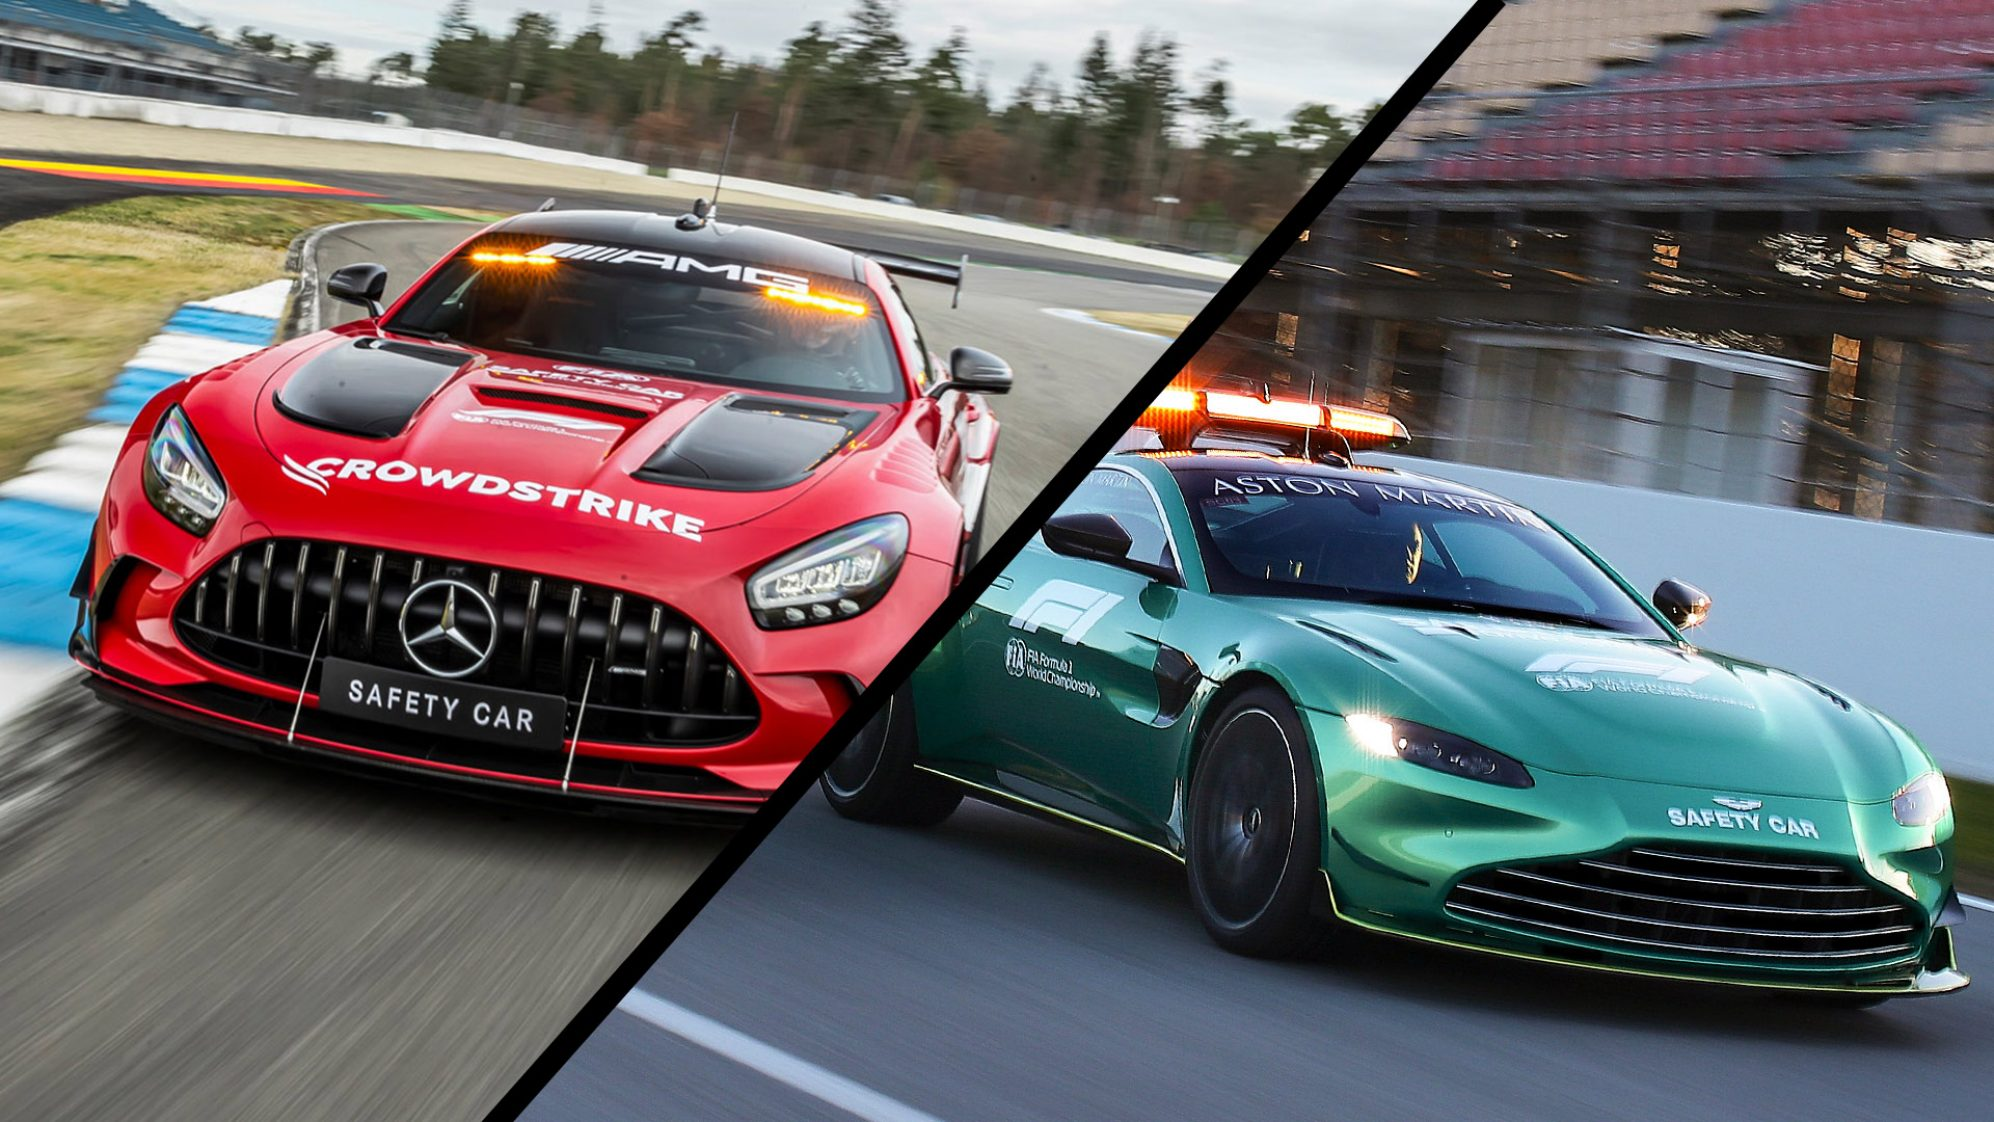 Safety Car | The Formula 1 Wiki | FANDOM powered by Wikia